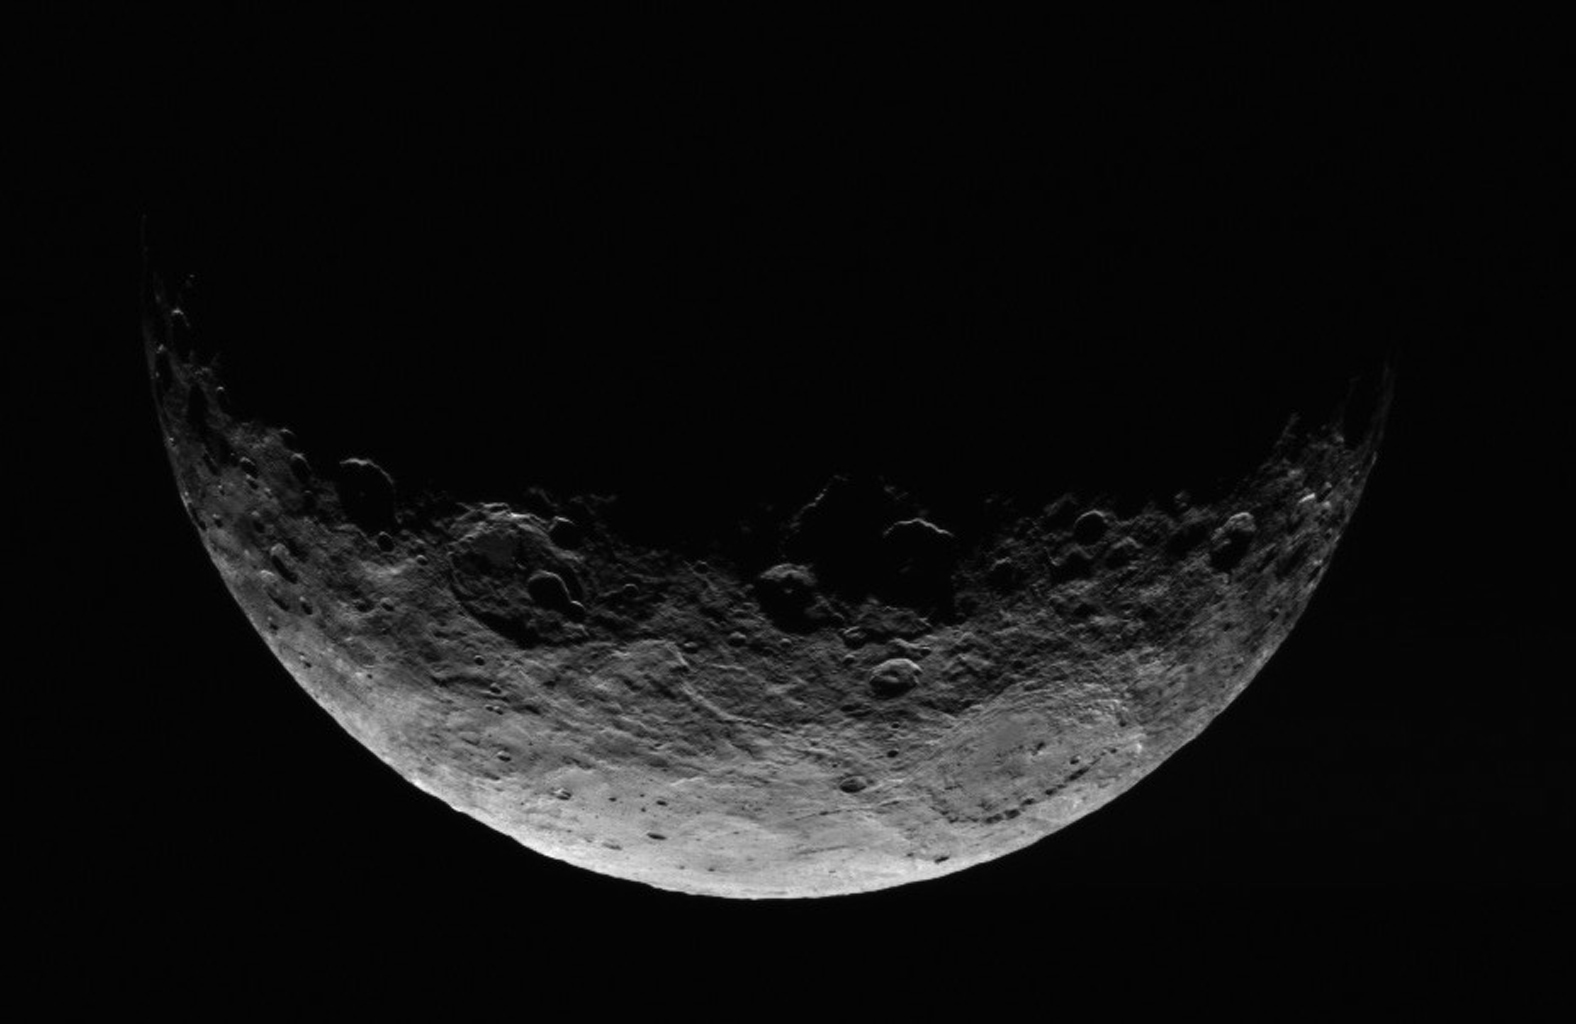 Space images dawn rc3 image 4 - Space wallpaper large ...